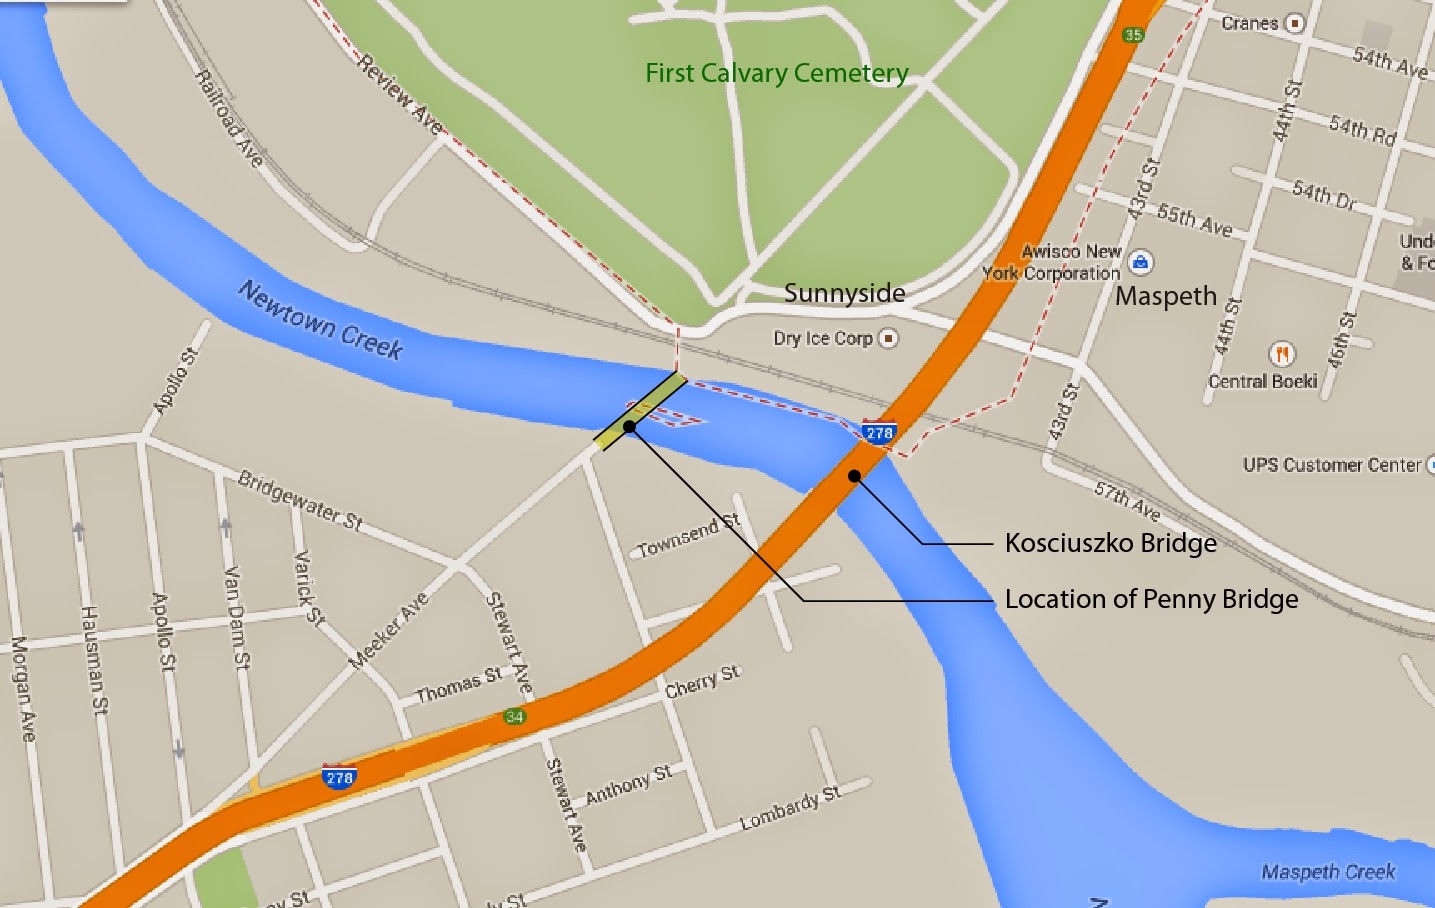 Area map showing location of Penny Bridge